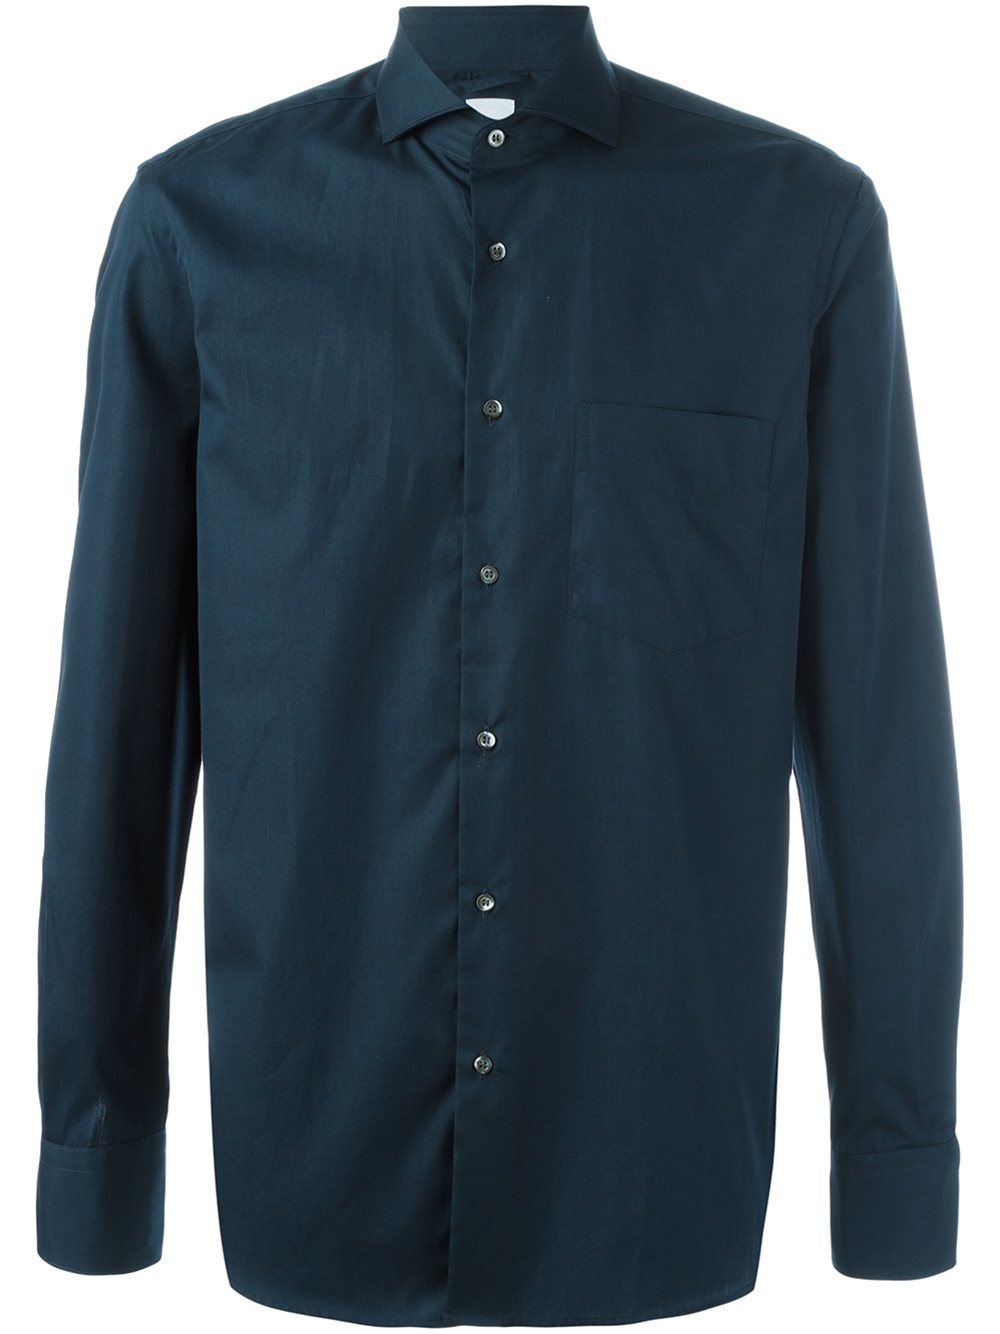 Aspesi classic button down shirt in blue for men lyst for Preppy button down shirts